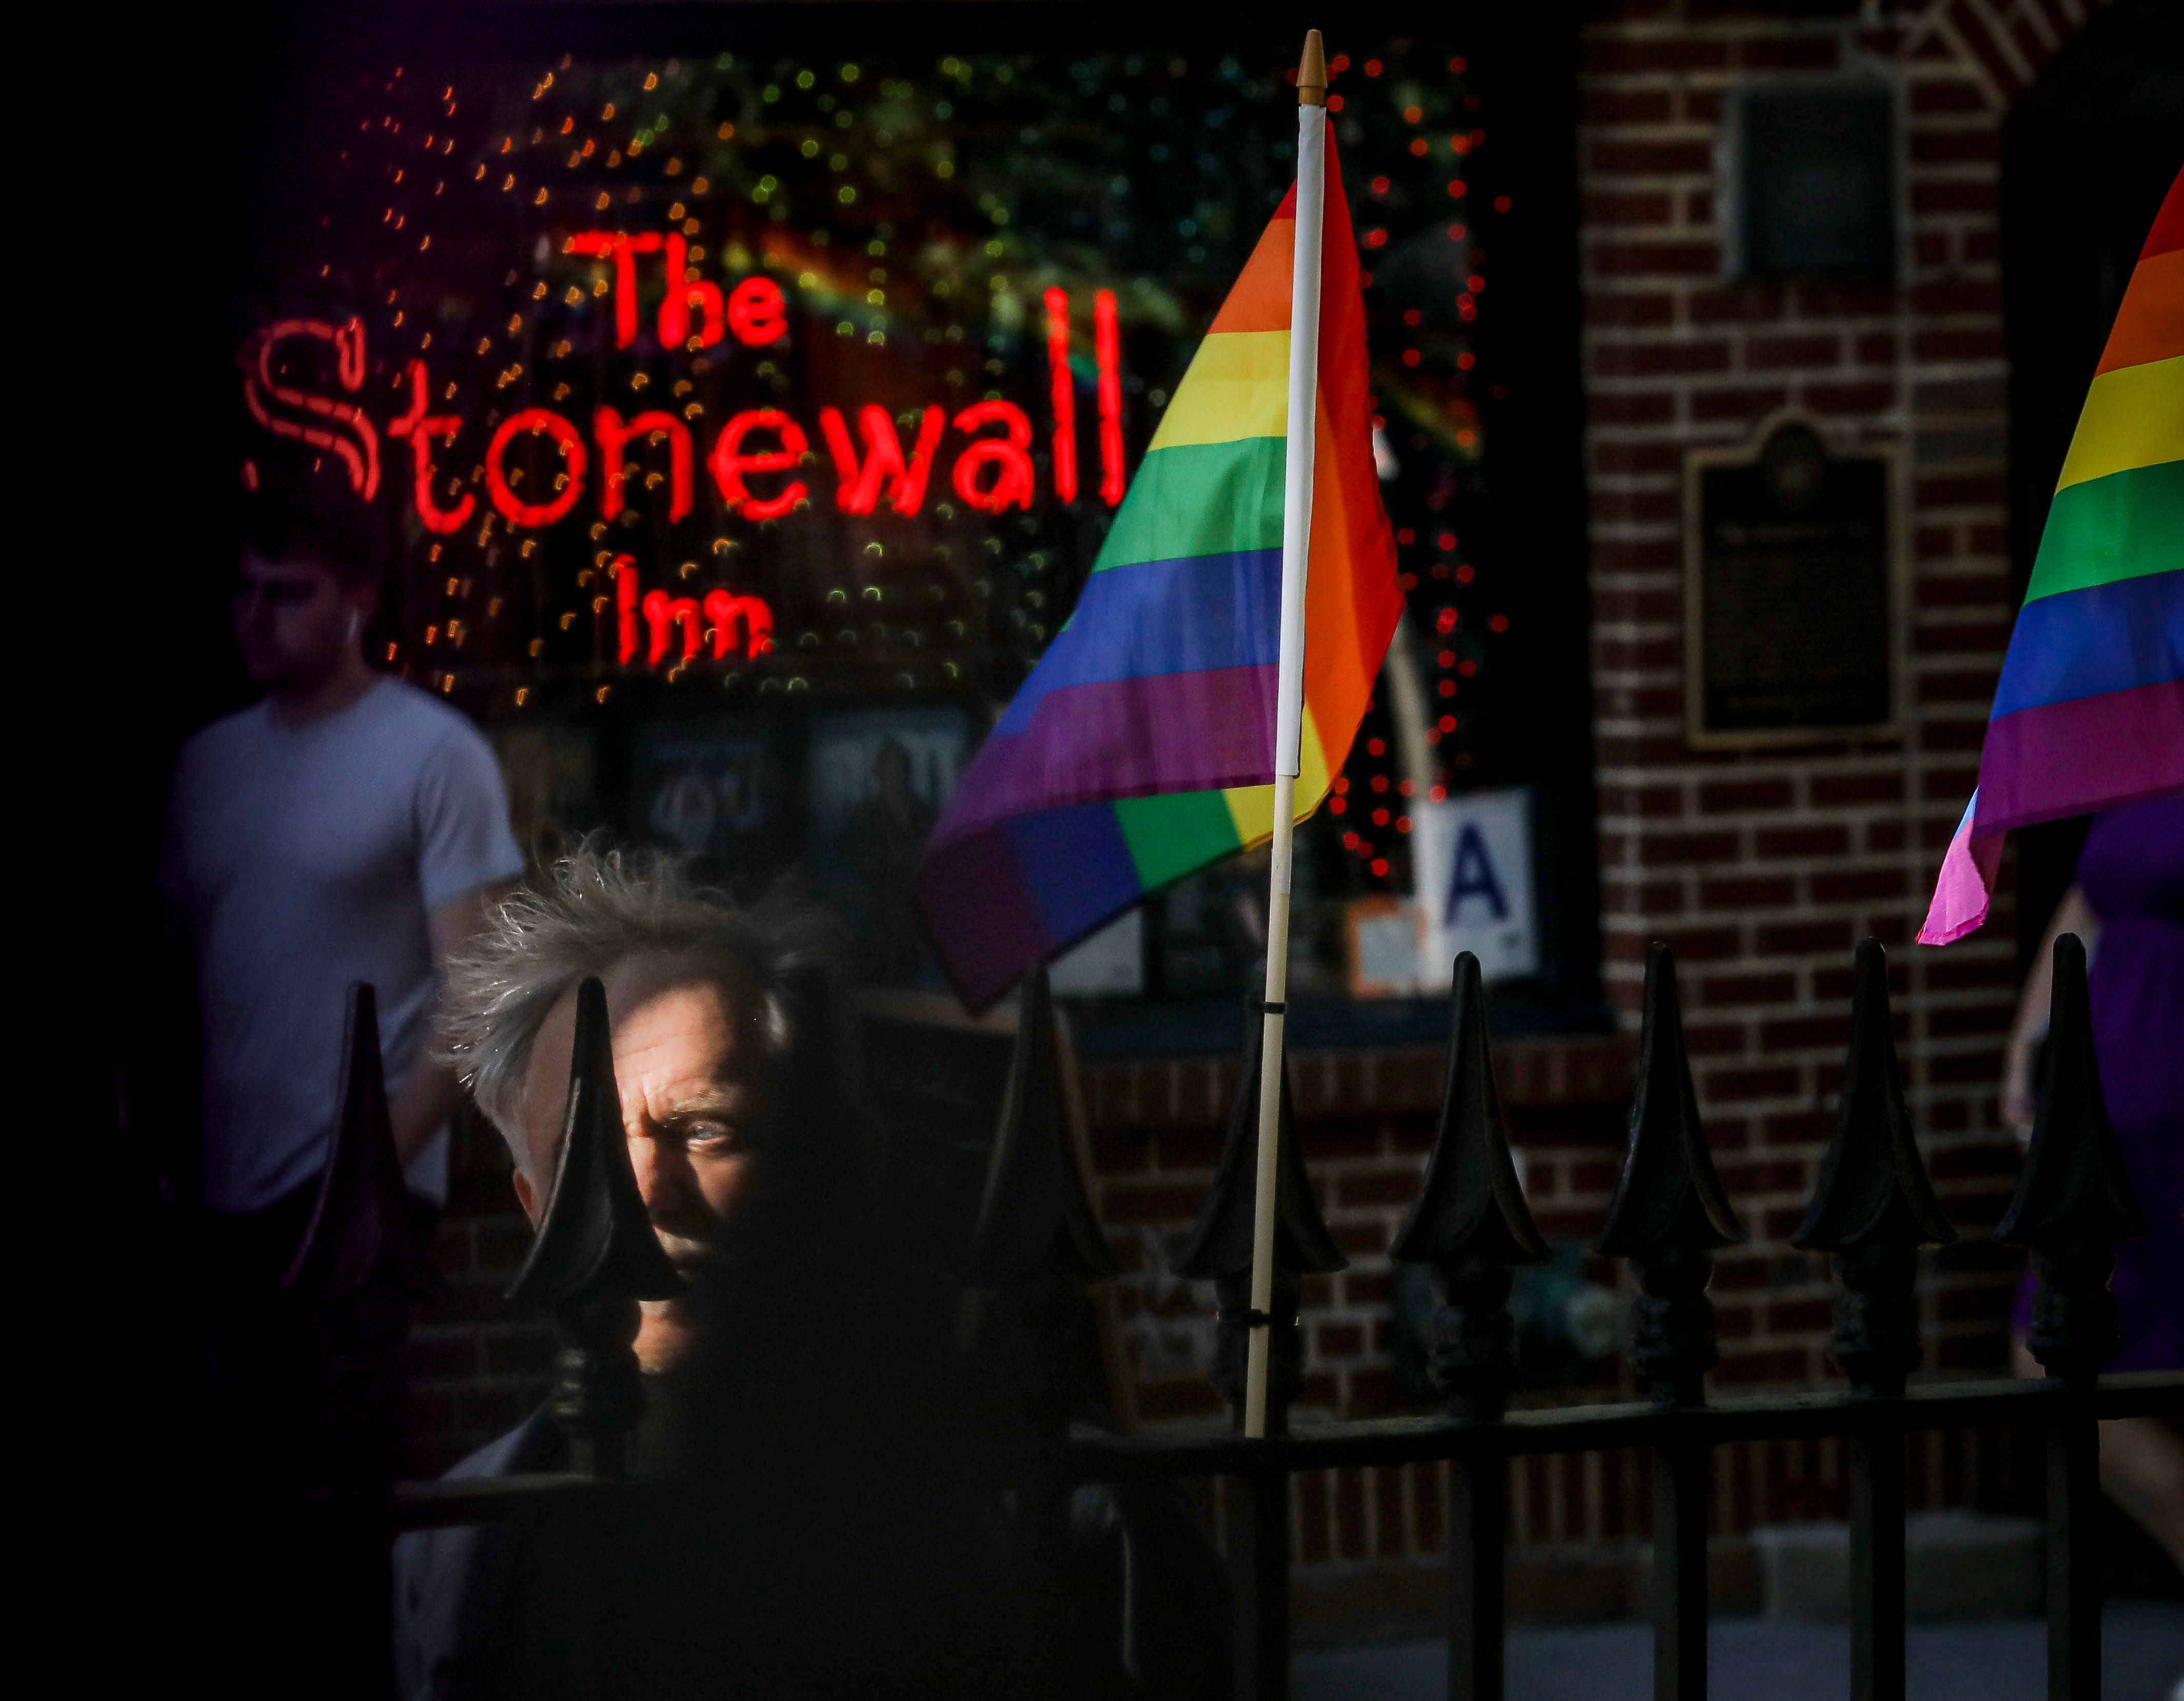 10 Great Places Where Lgbtq History Was Made Independence National Historical Park Lgbtq Black Lives Matter Protest